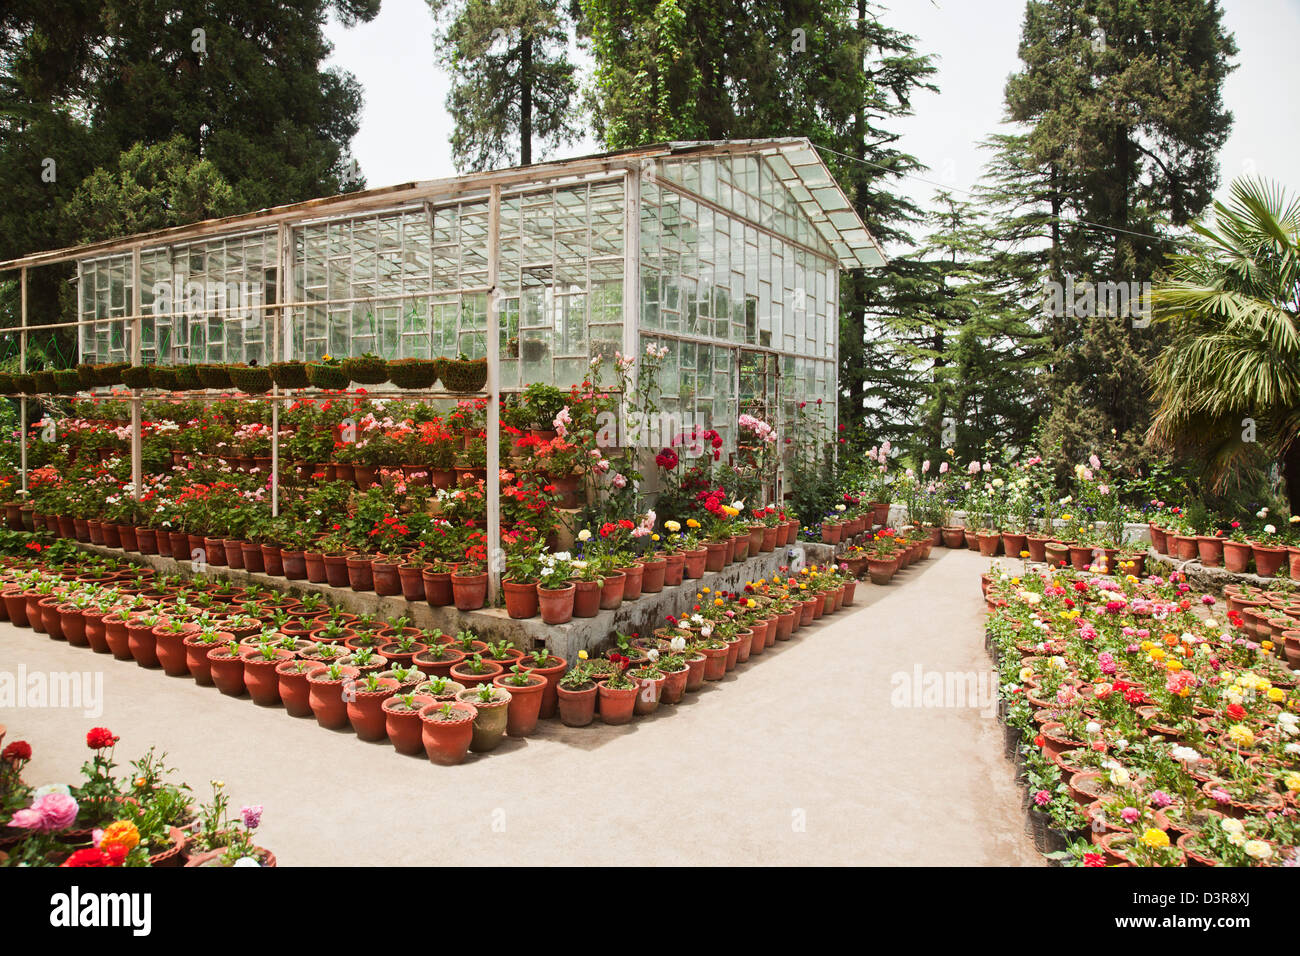 flower nursery at company bagh in mussoorie, uttarakhand, india